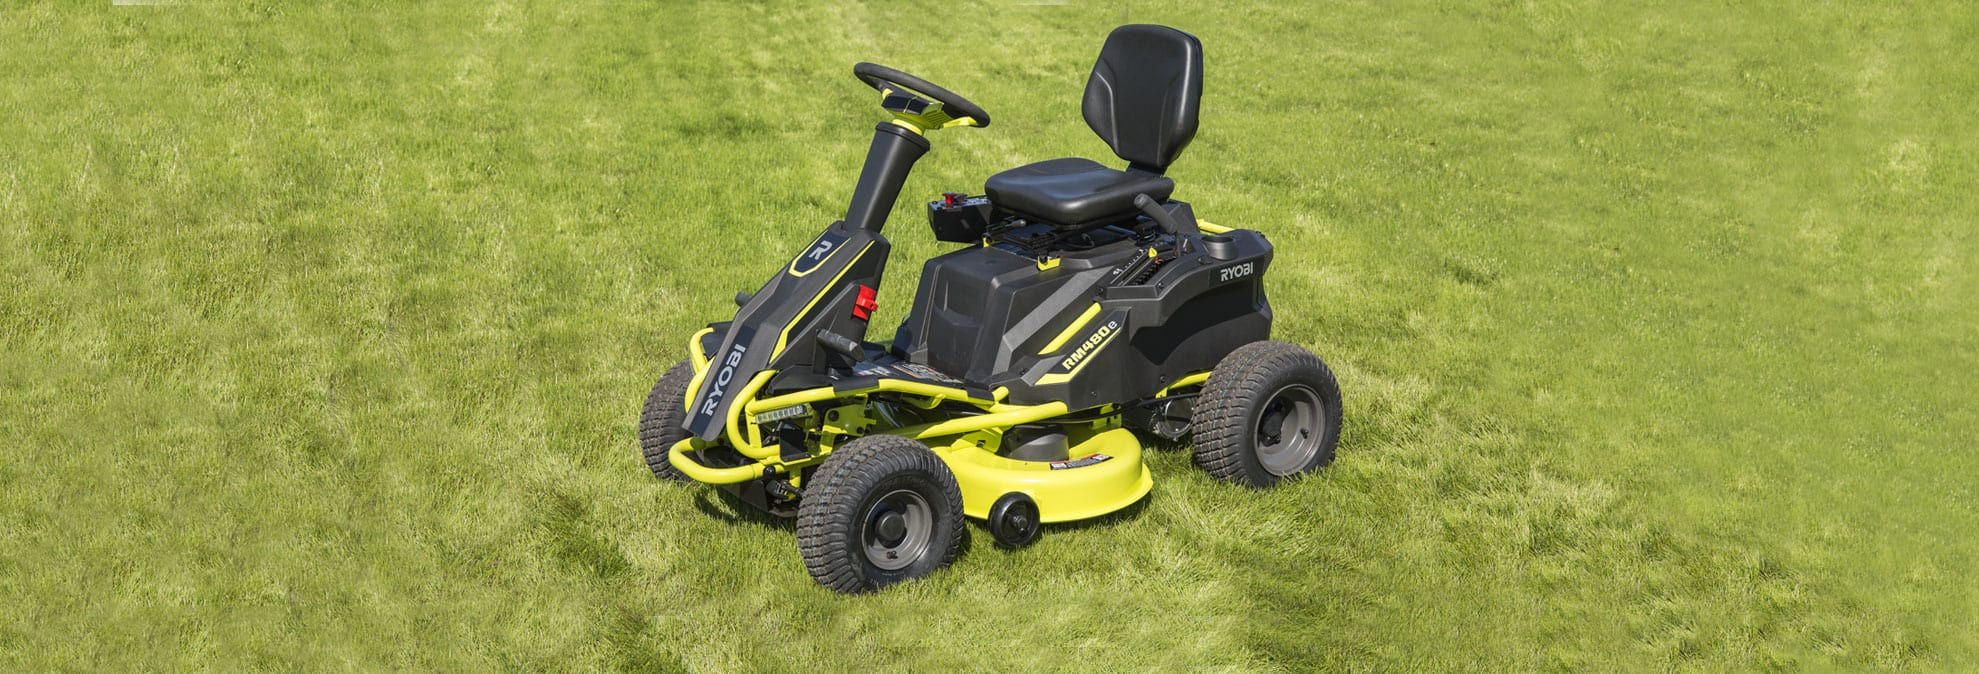 Ryobi R48110 Electric Riding Lawn Mower Review Consumer Reports John Deere A Batteriesand Wiring Harness